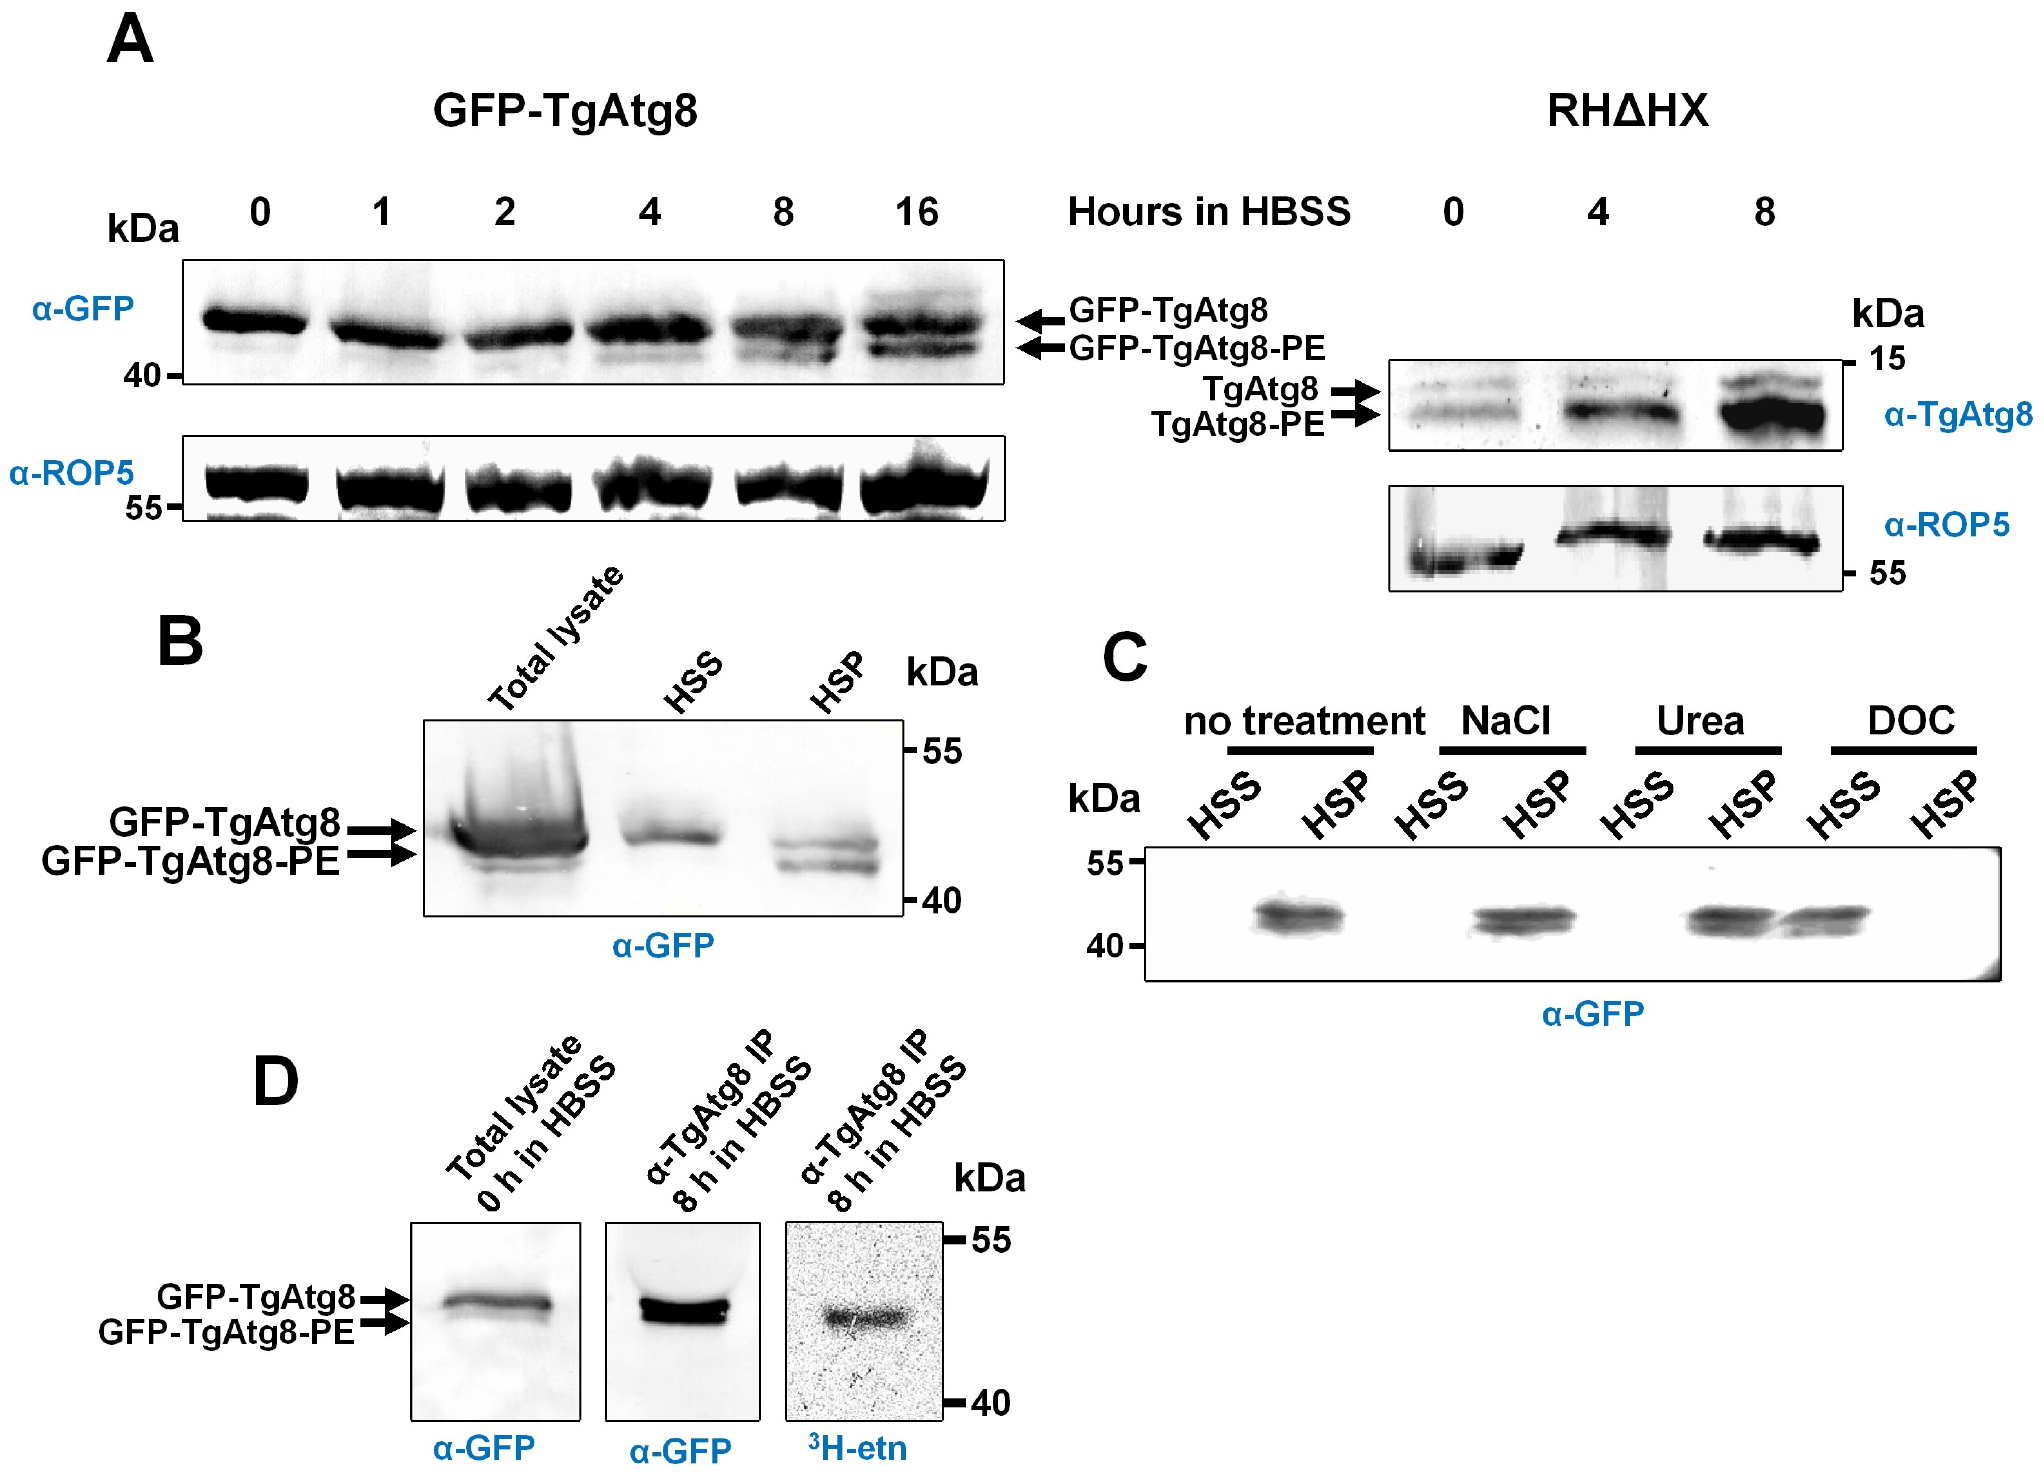 TgAtg8 exists both in soluble and membrane-associated forms that can be separated by urea SDS-PAGE.